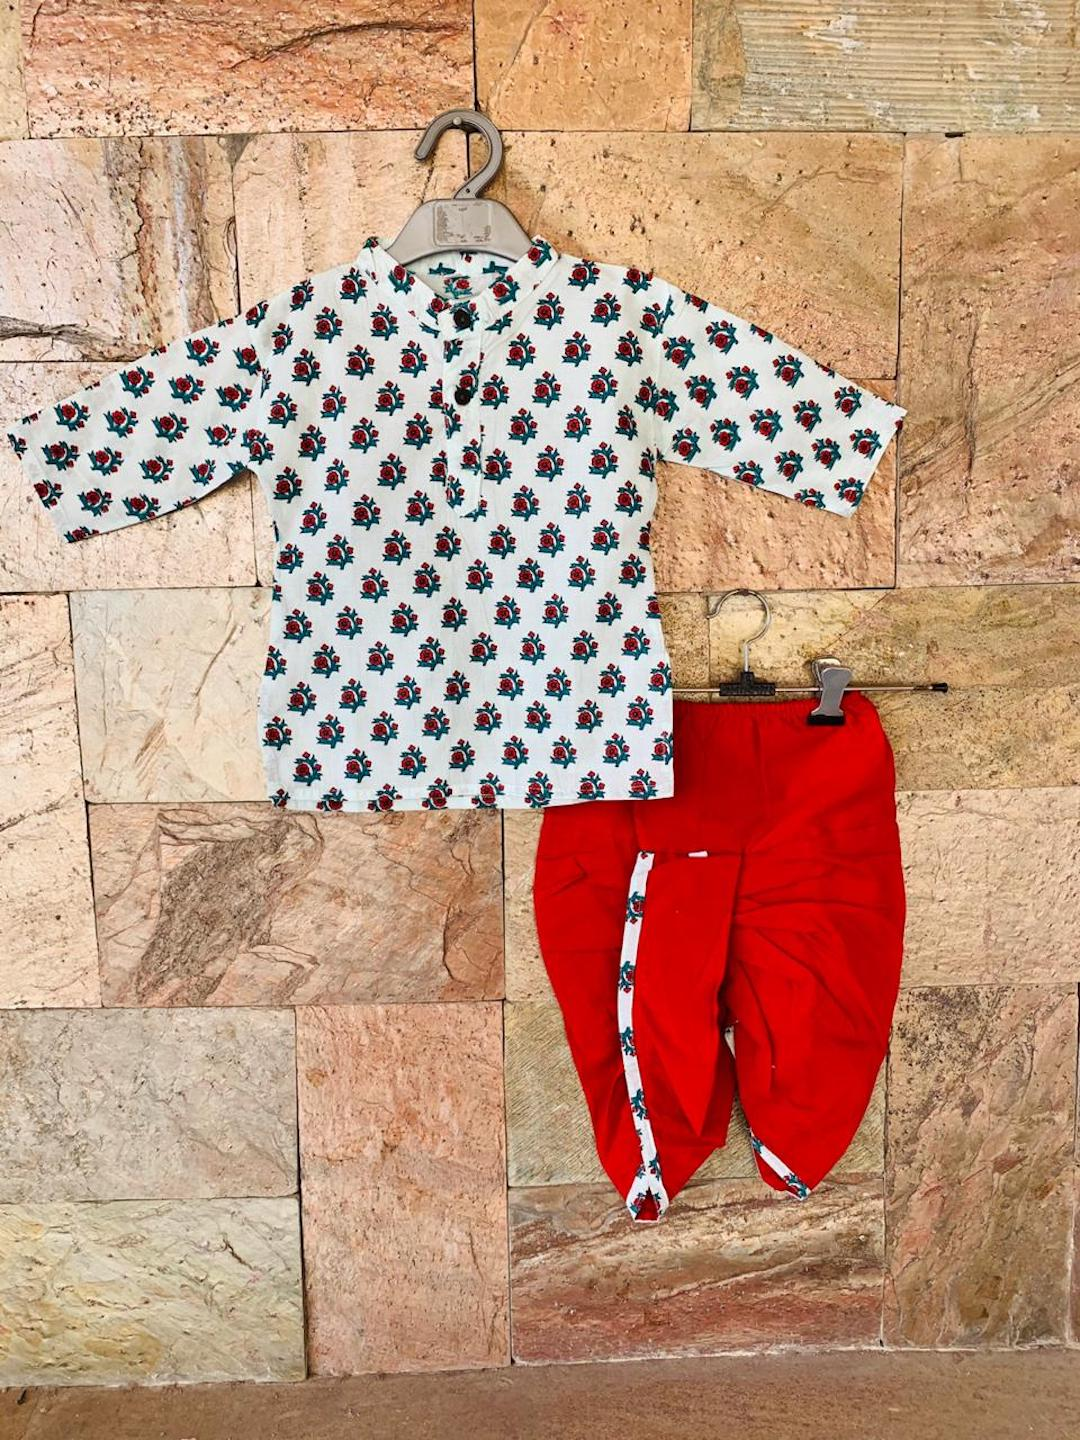 [Available] Boys Printed White Kurta with Red Dhoti Pants Set [ALL SIZES]